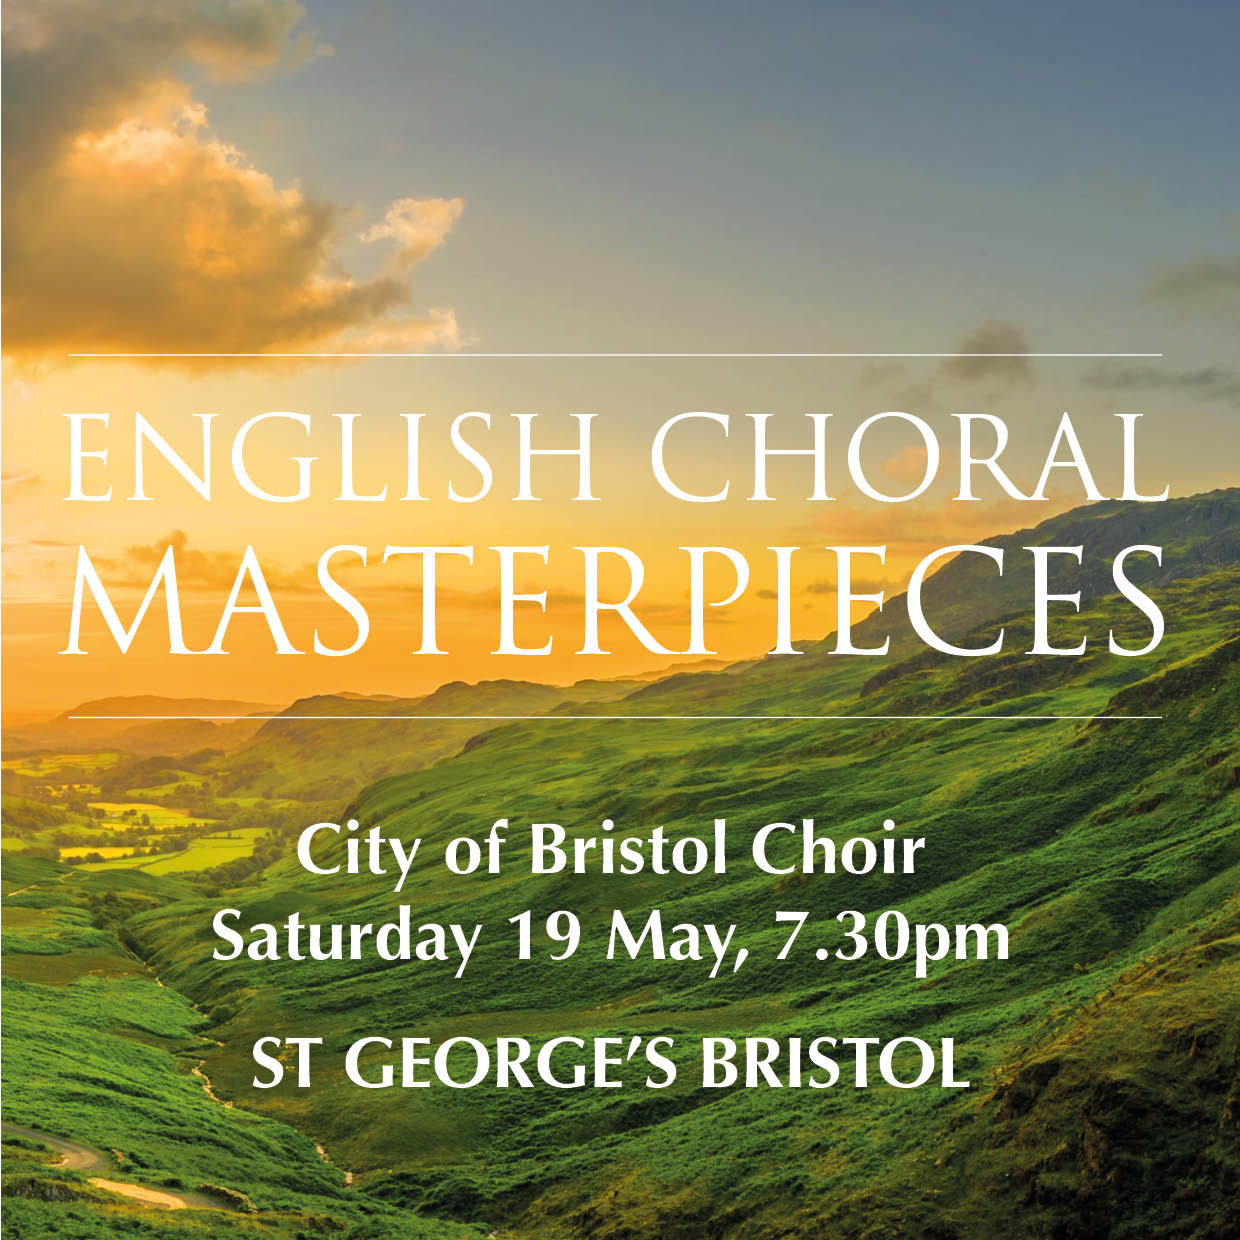 English Choral Masterpieces